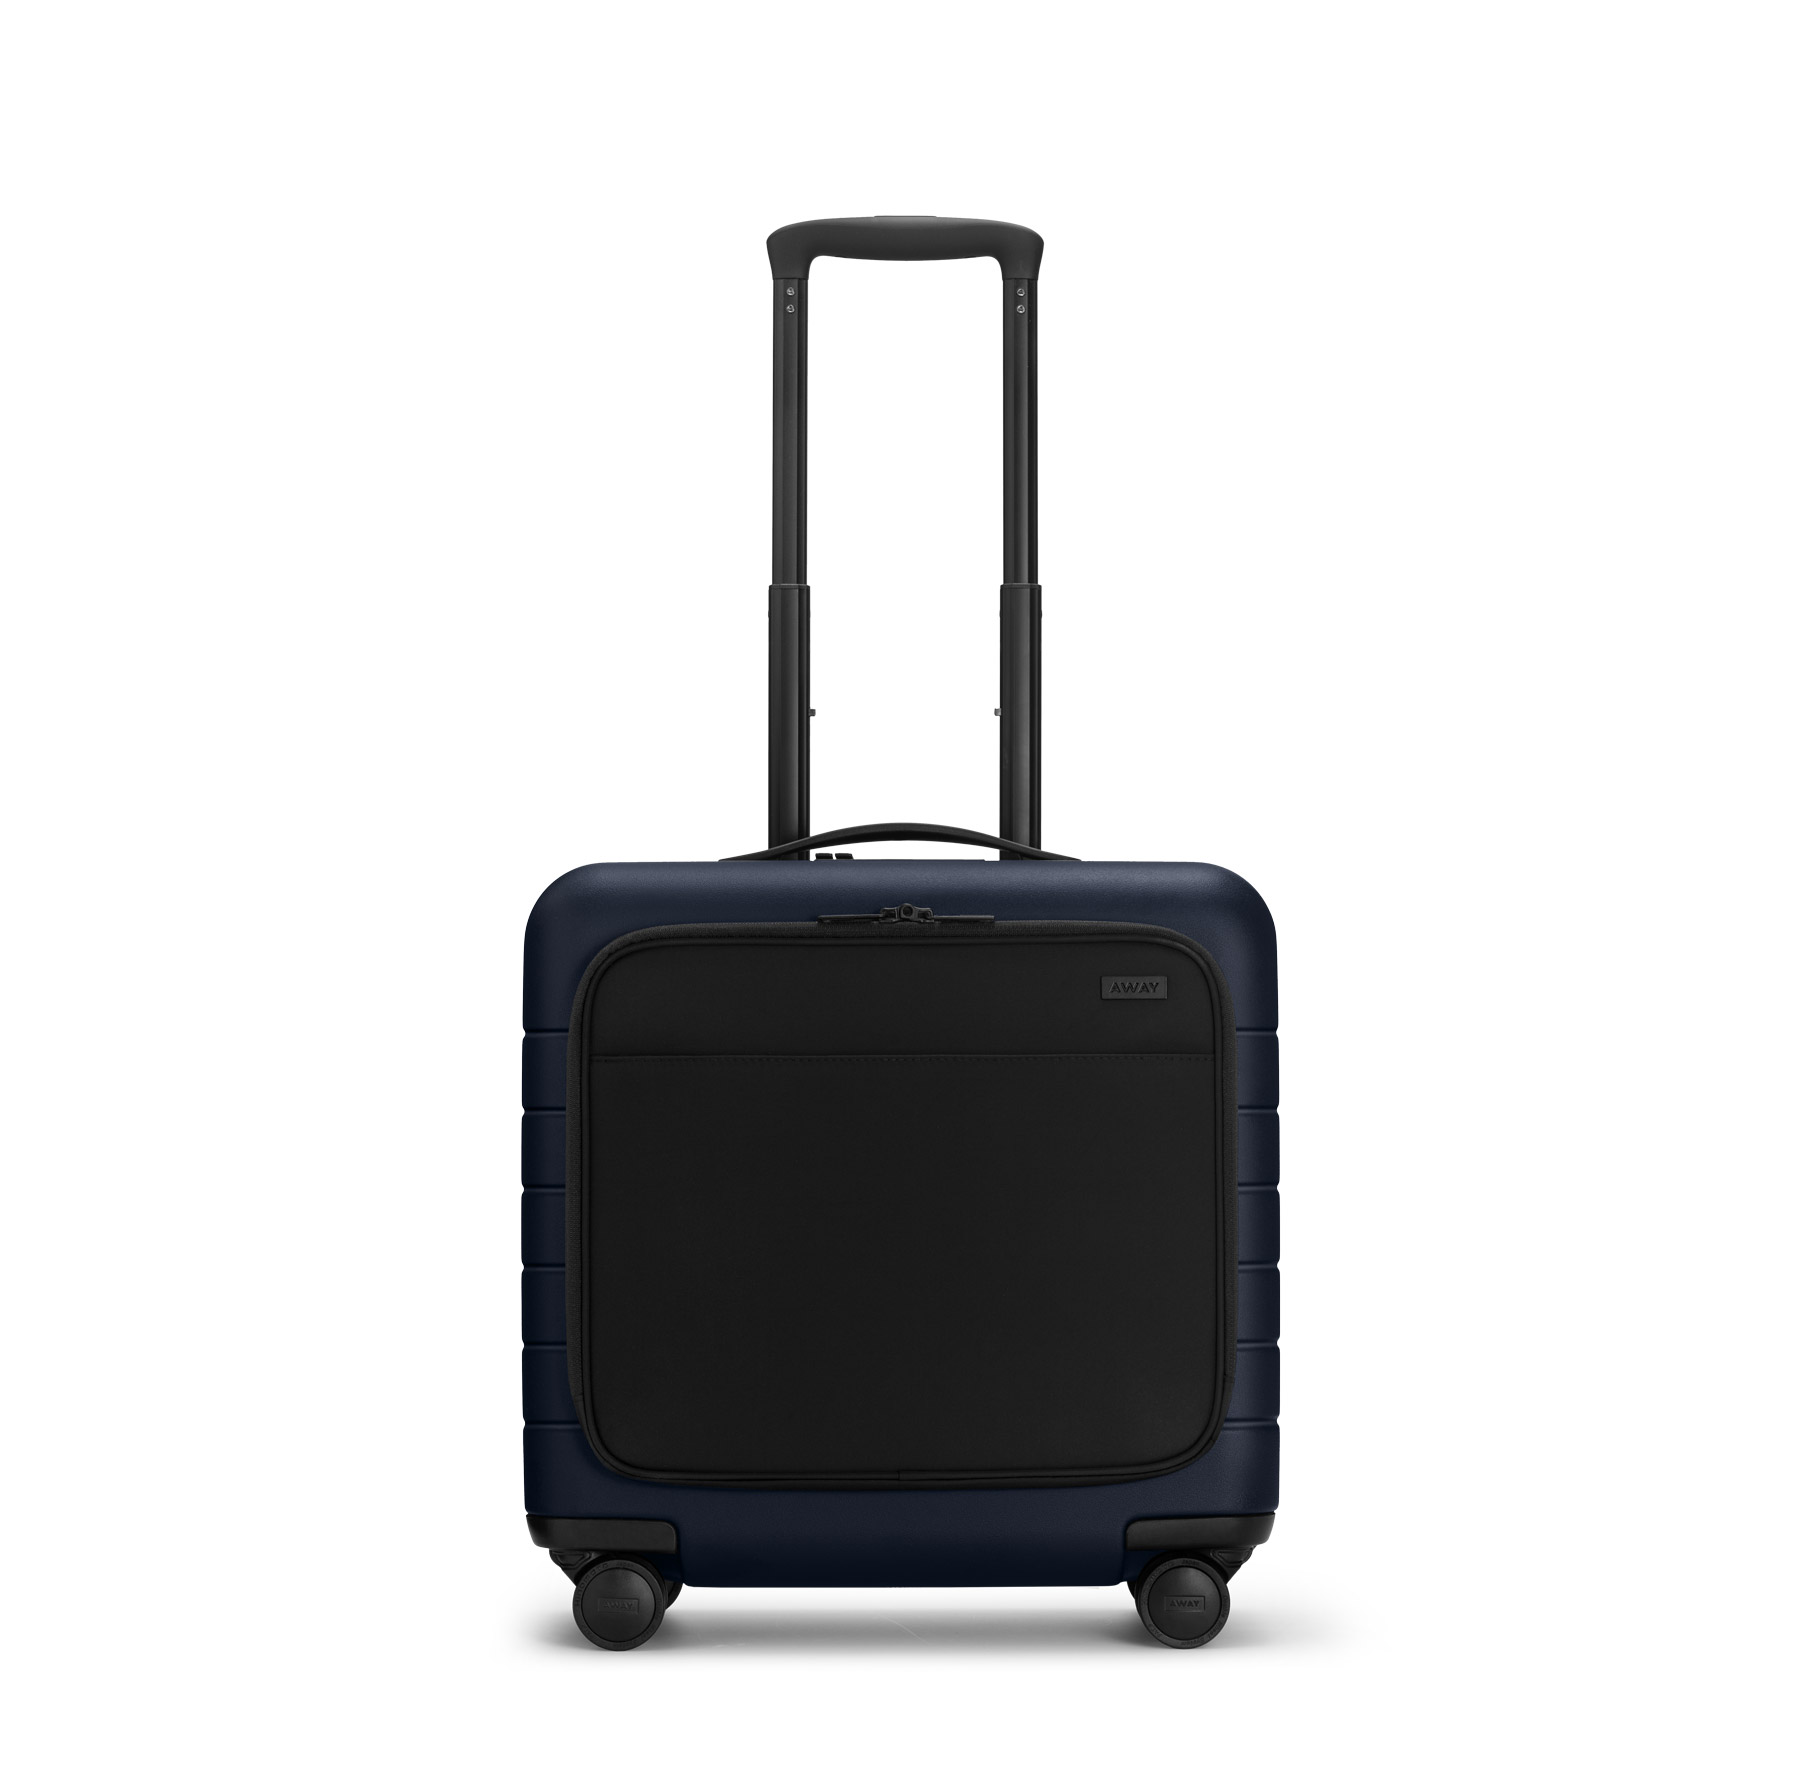 6 Clever Items 09/20/19 - Away The Daily Carry-On with Pocket